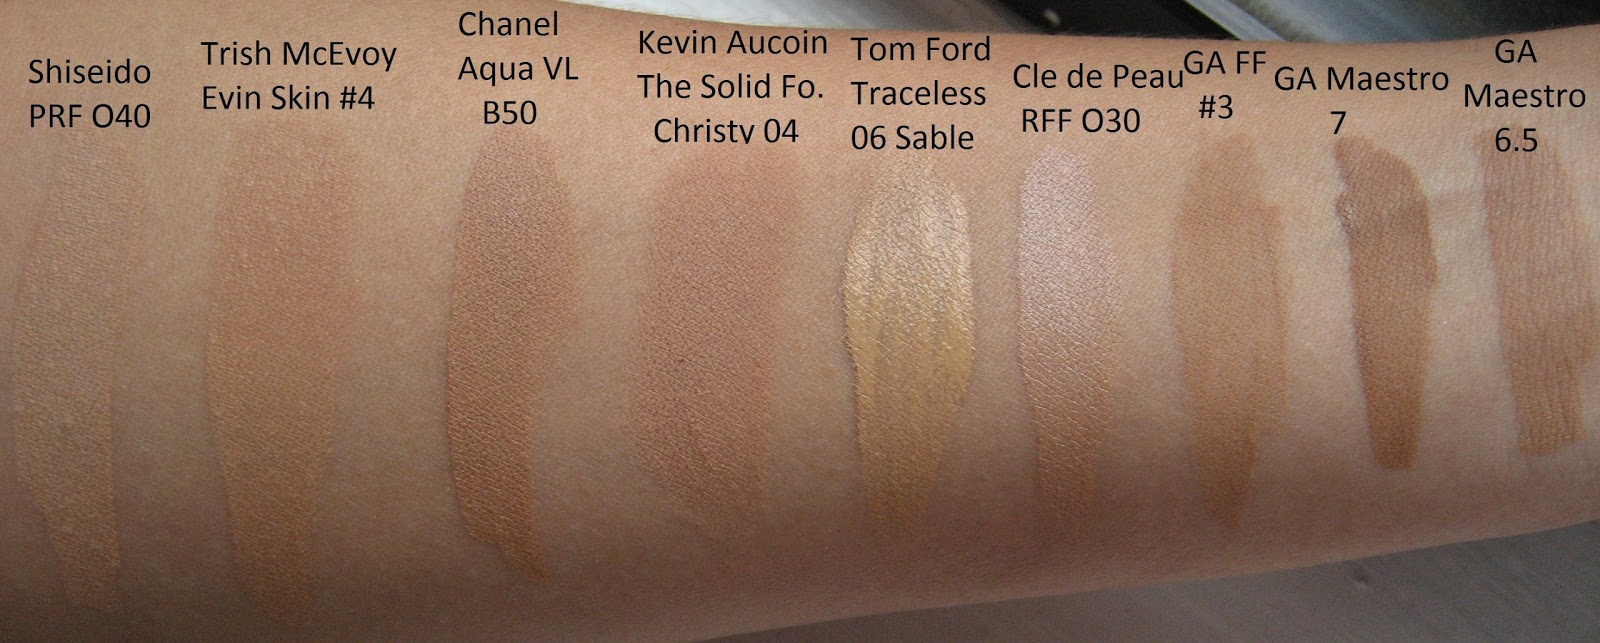 Makeup forever matte velvet skin blurring powder foundation review